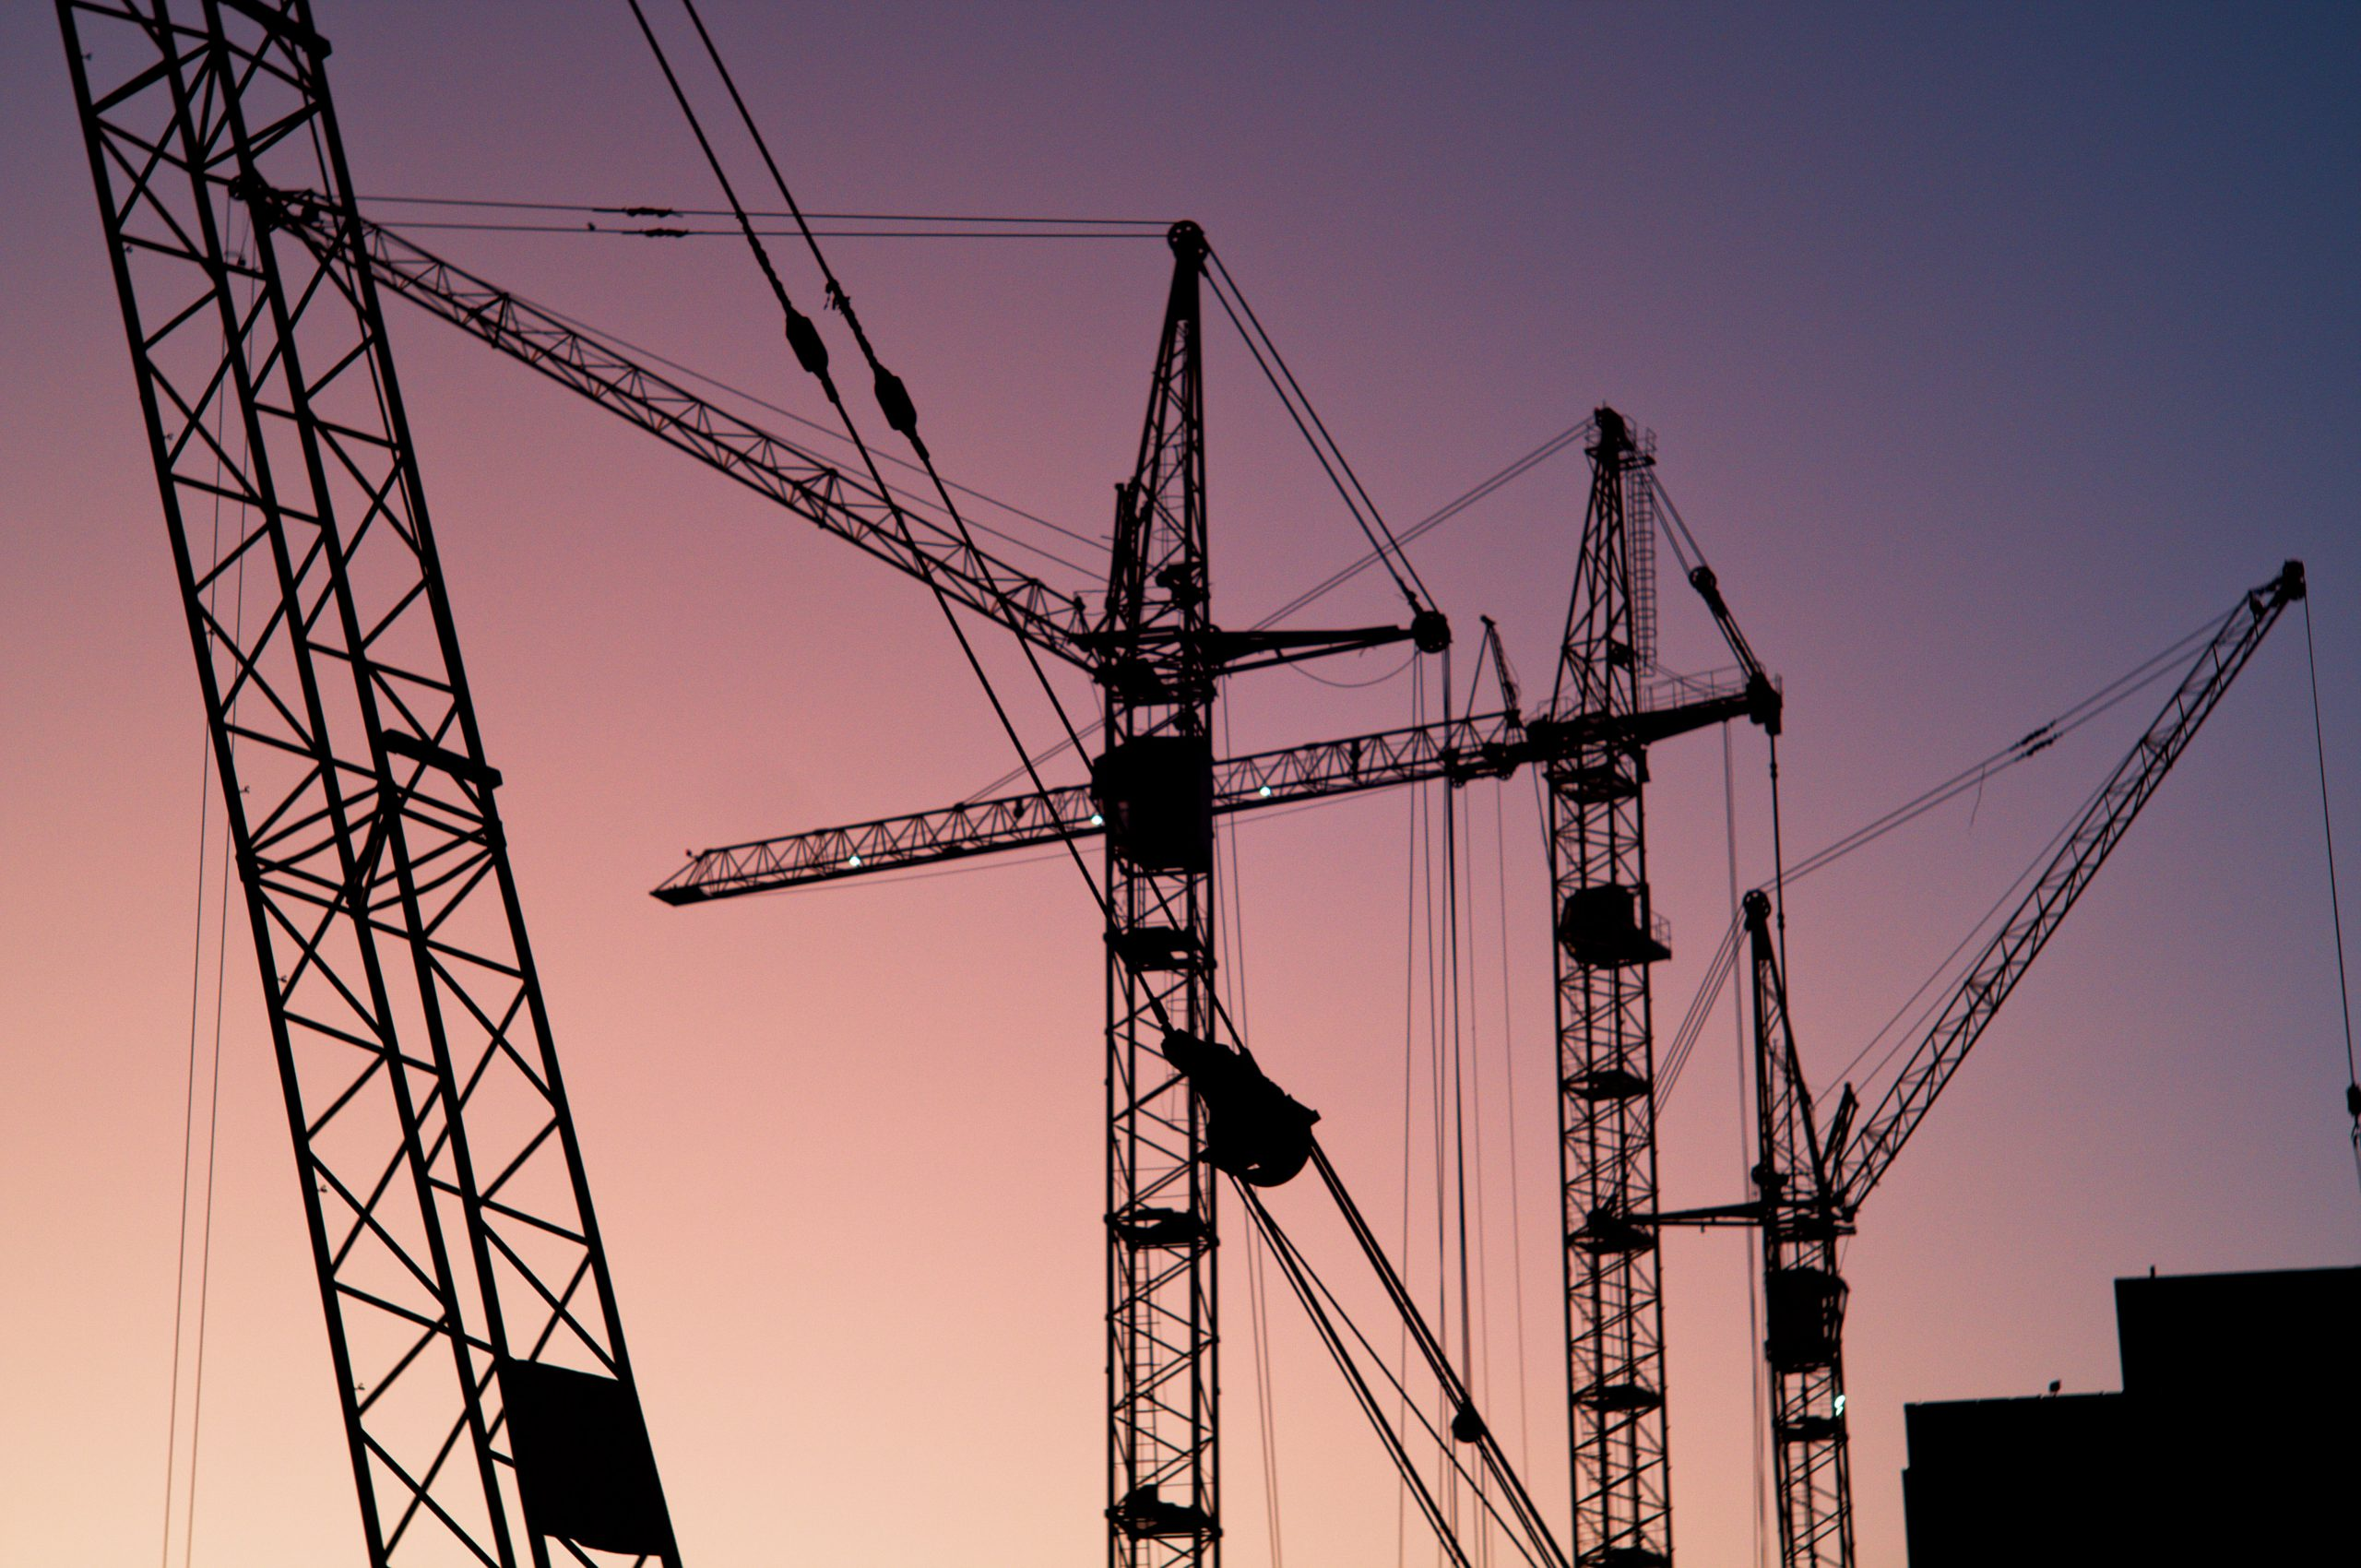 silhouette of construction cranes